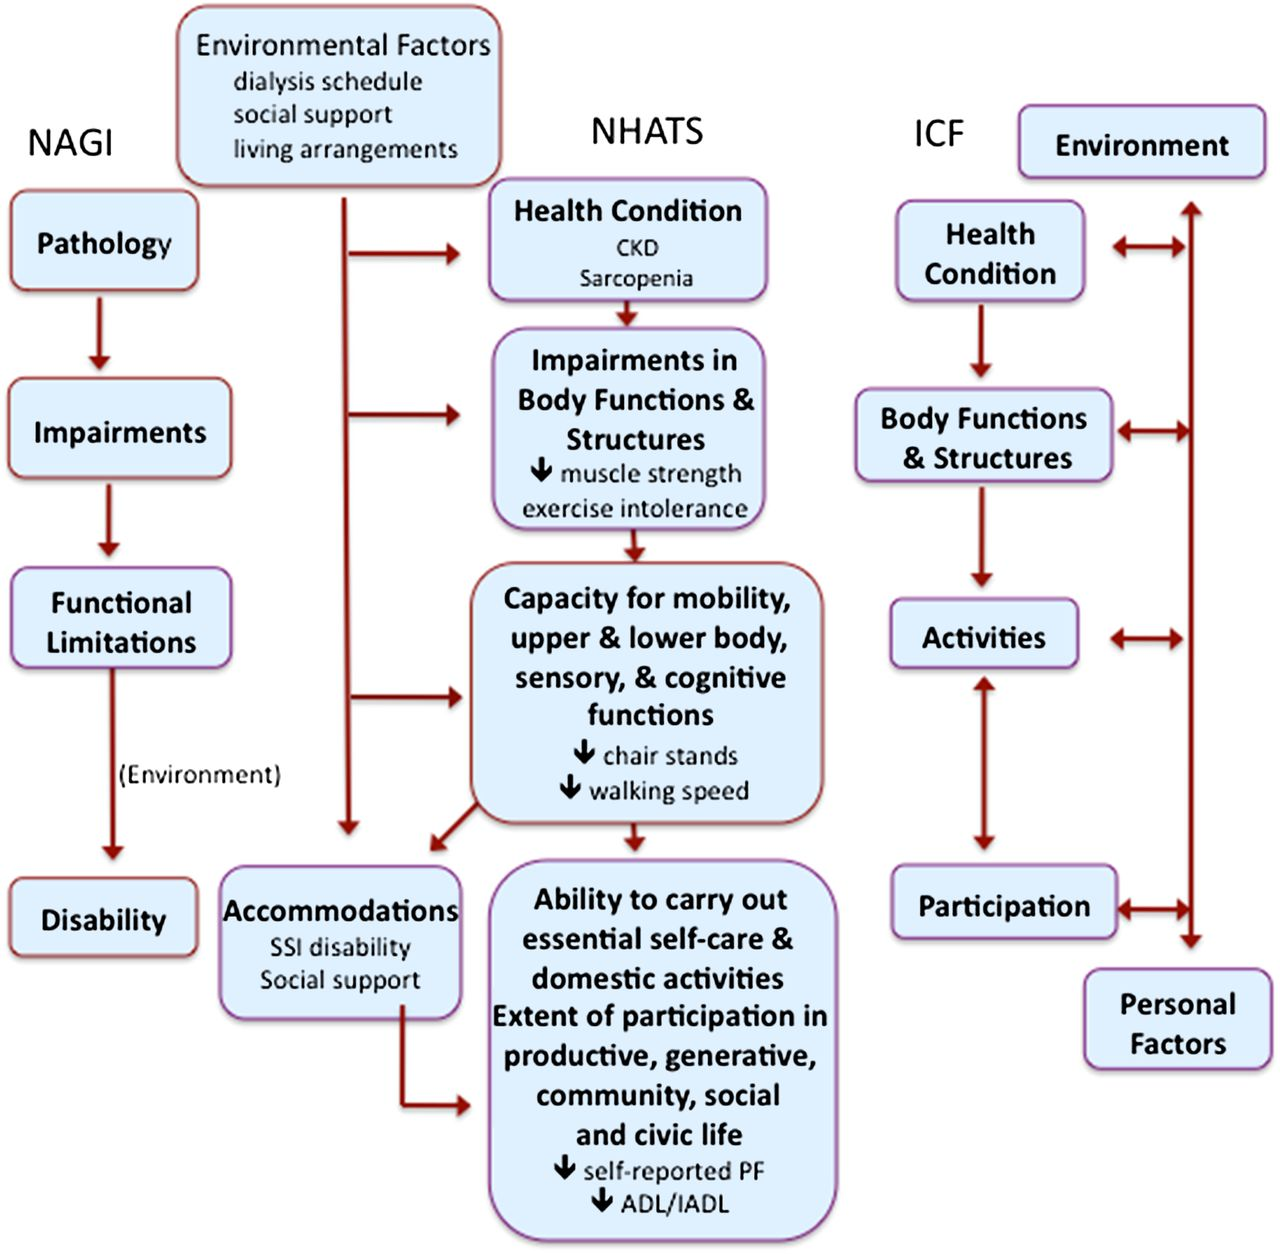 Assessing Physical Function and Physical Activity in Patients with